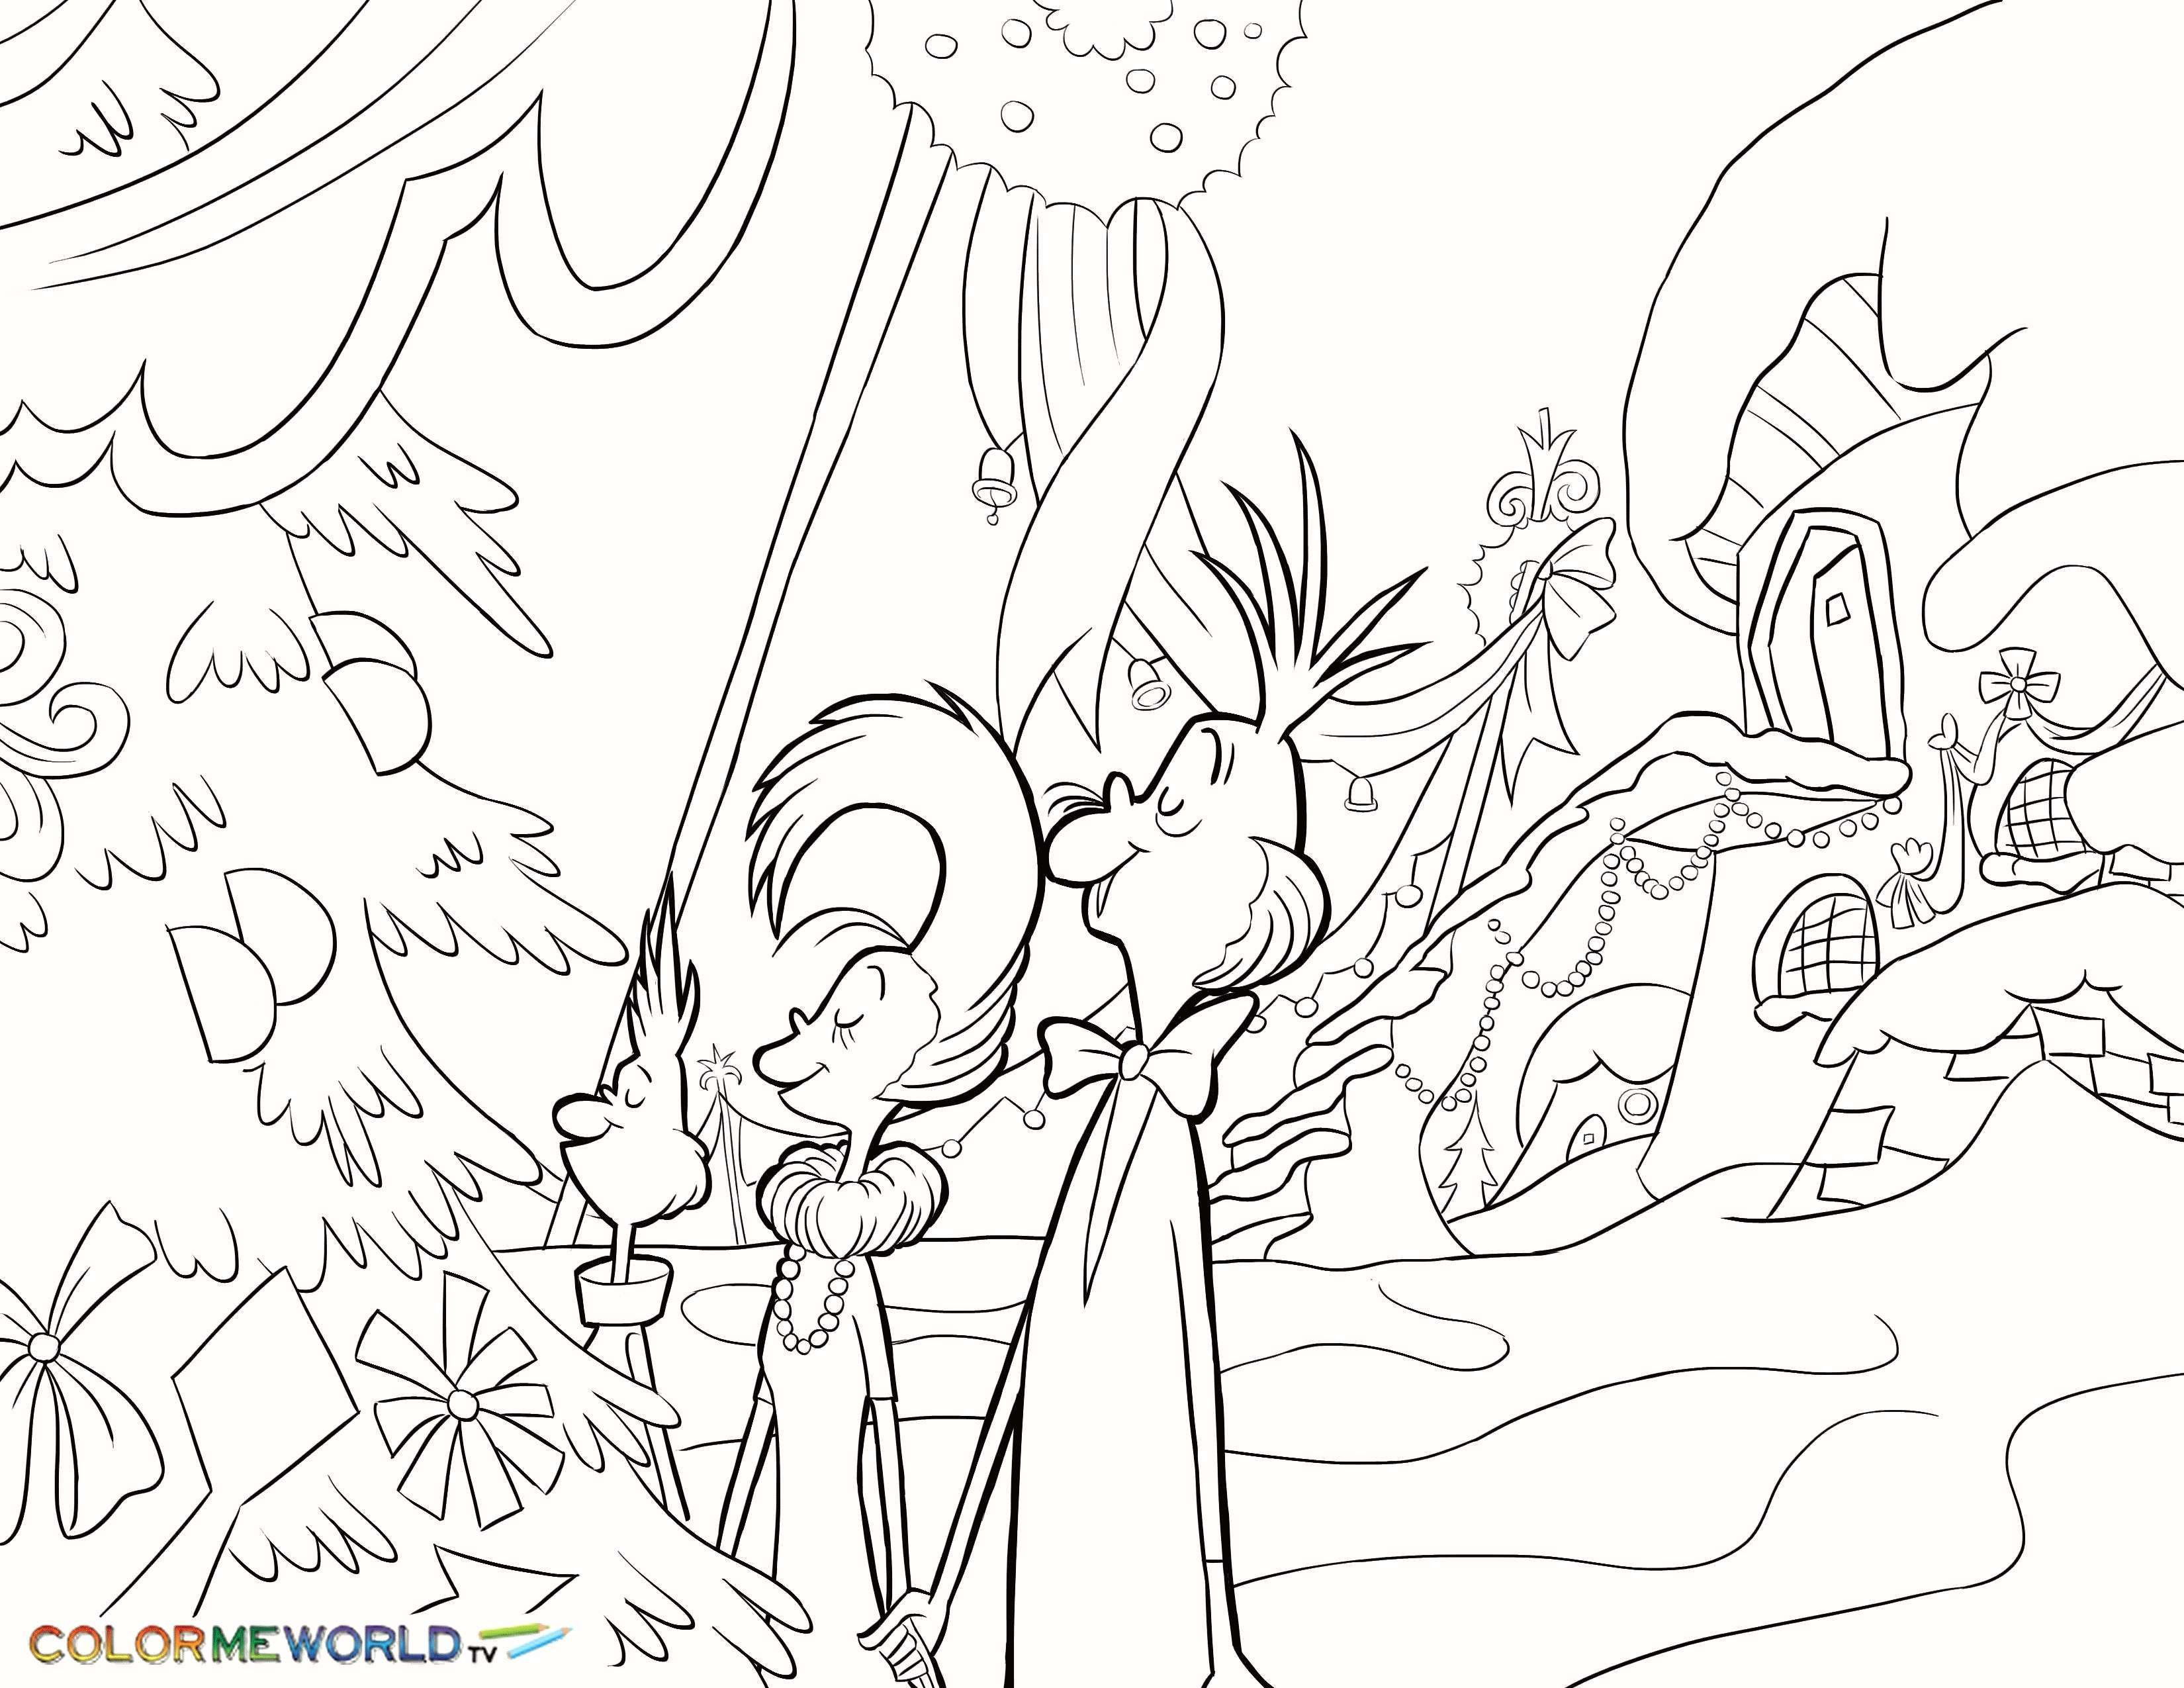 Xmas Coloring Pages Grinch Coloring Pages Christmas Coloring Pages Tree Coloring Page